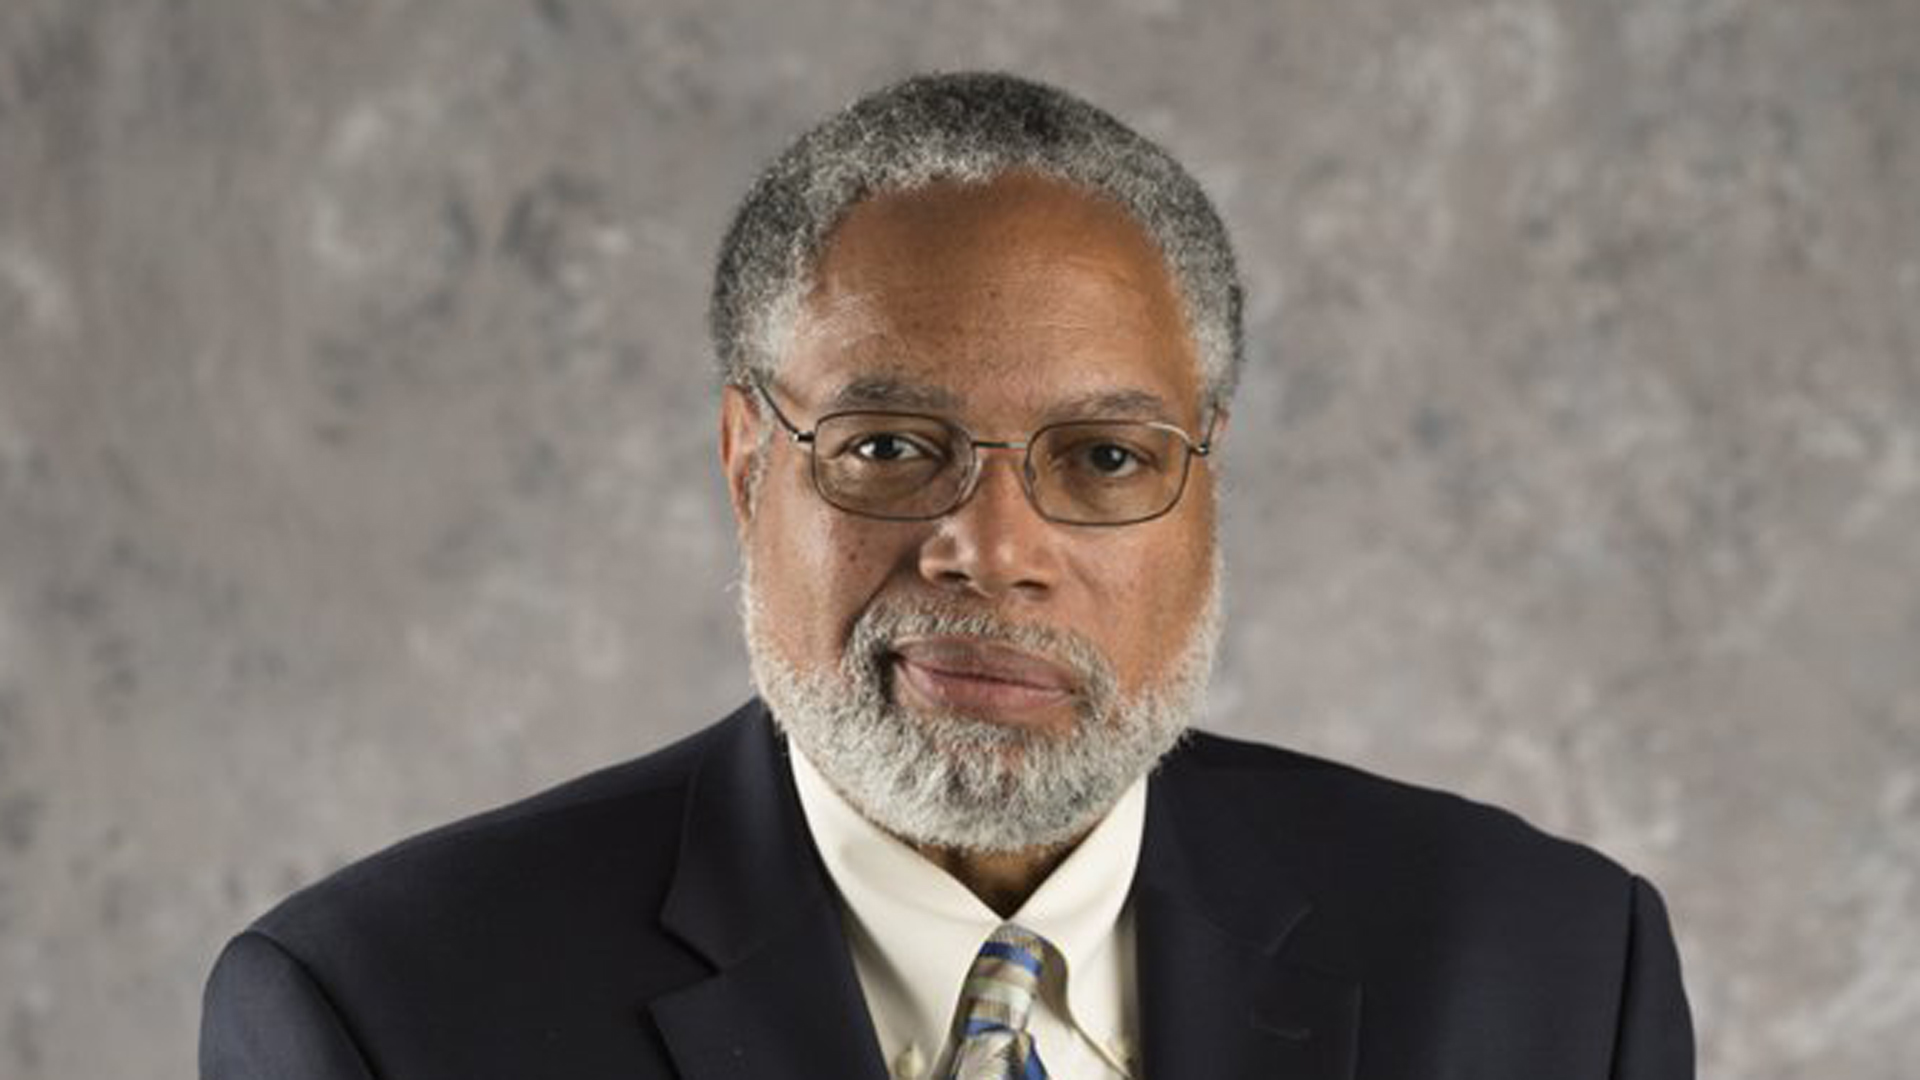 Lonnie Bunch is pictured in an undated photo. (Credit: Michael R. Barnes/Smithsonian)